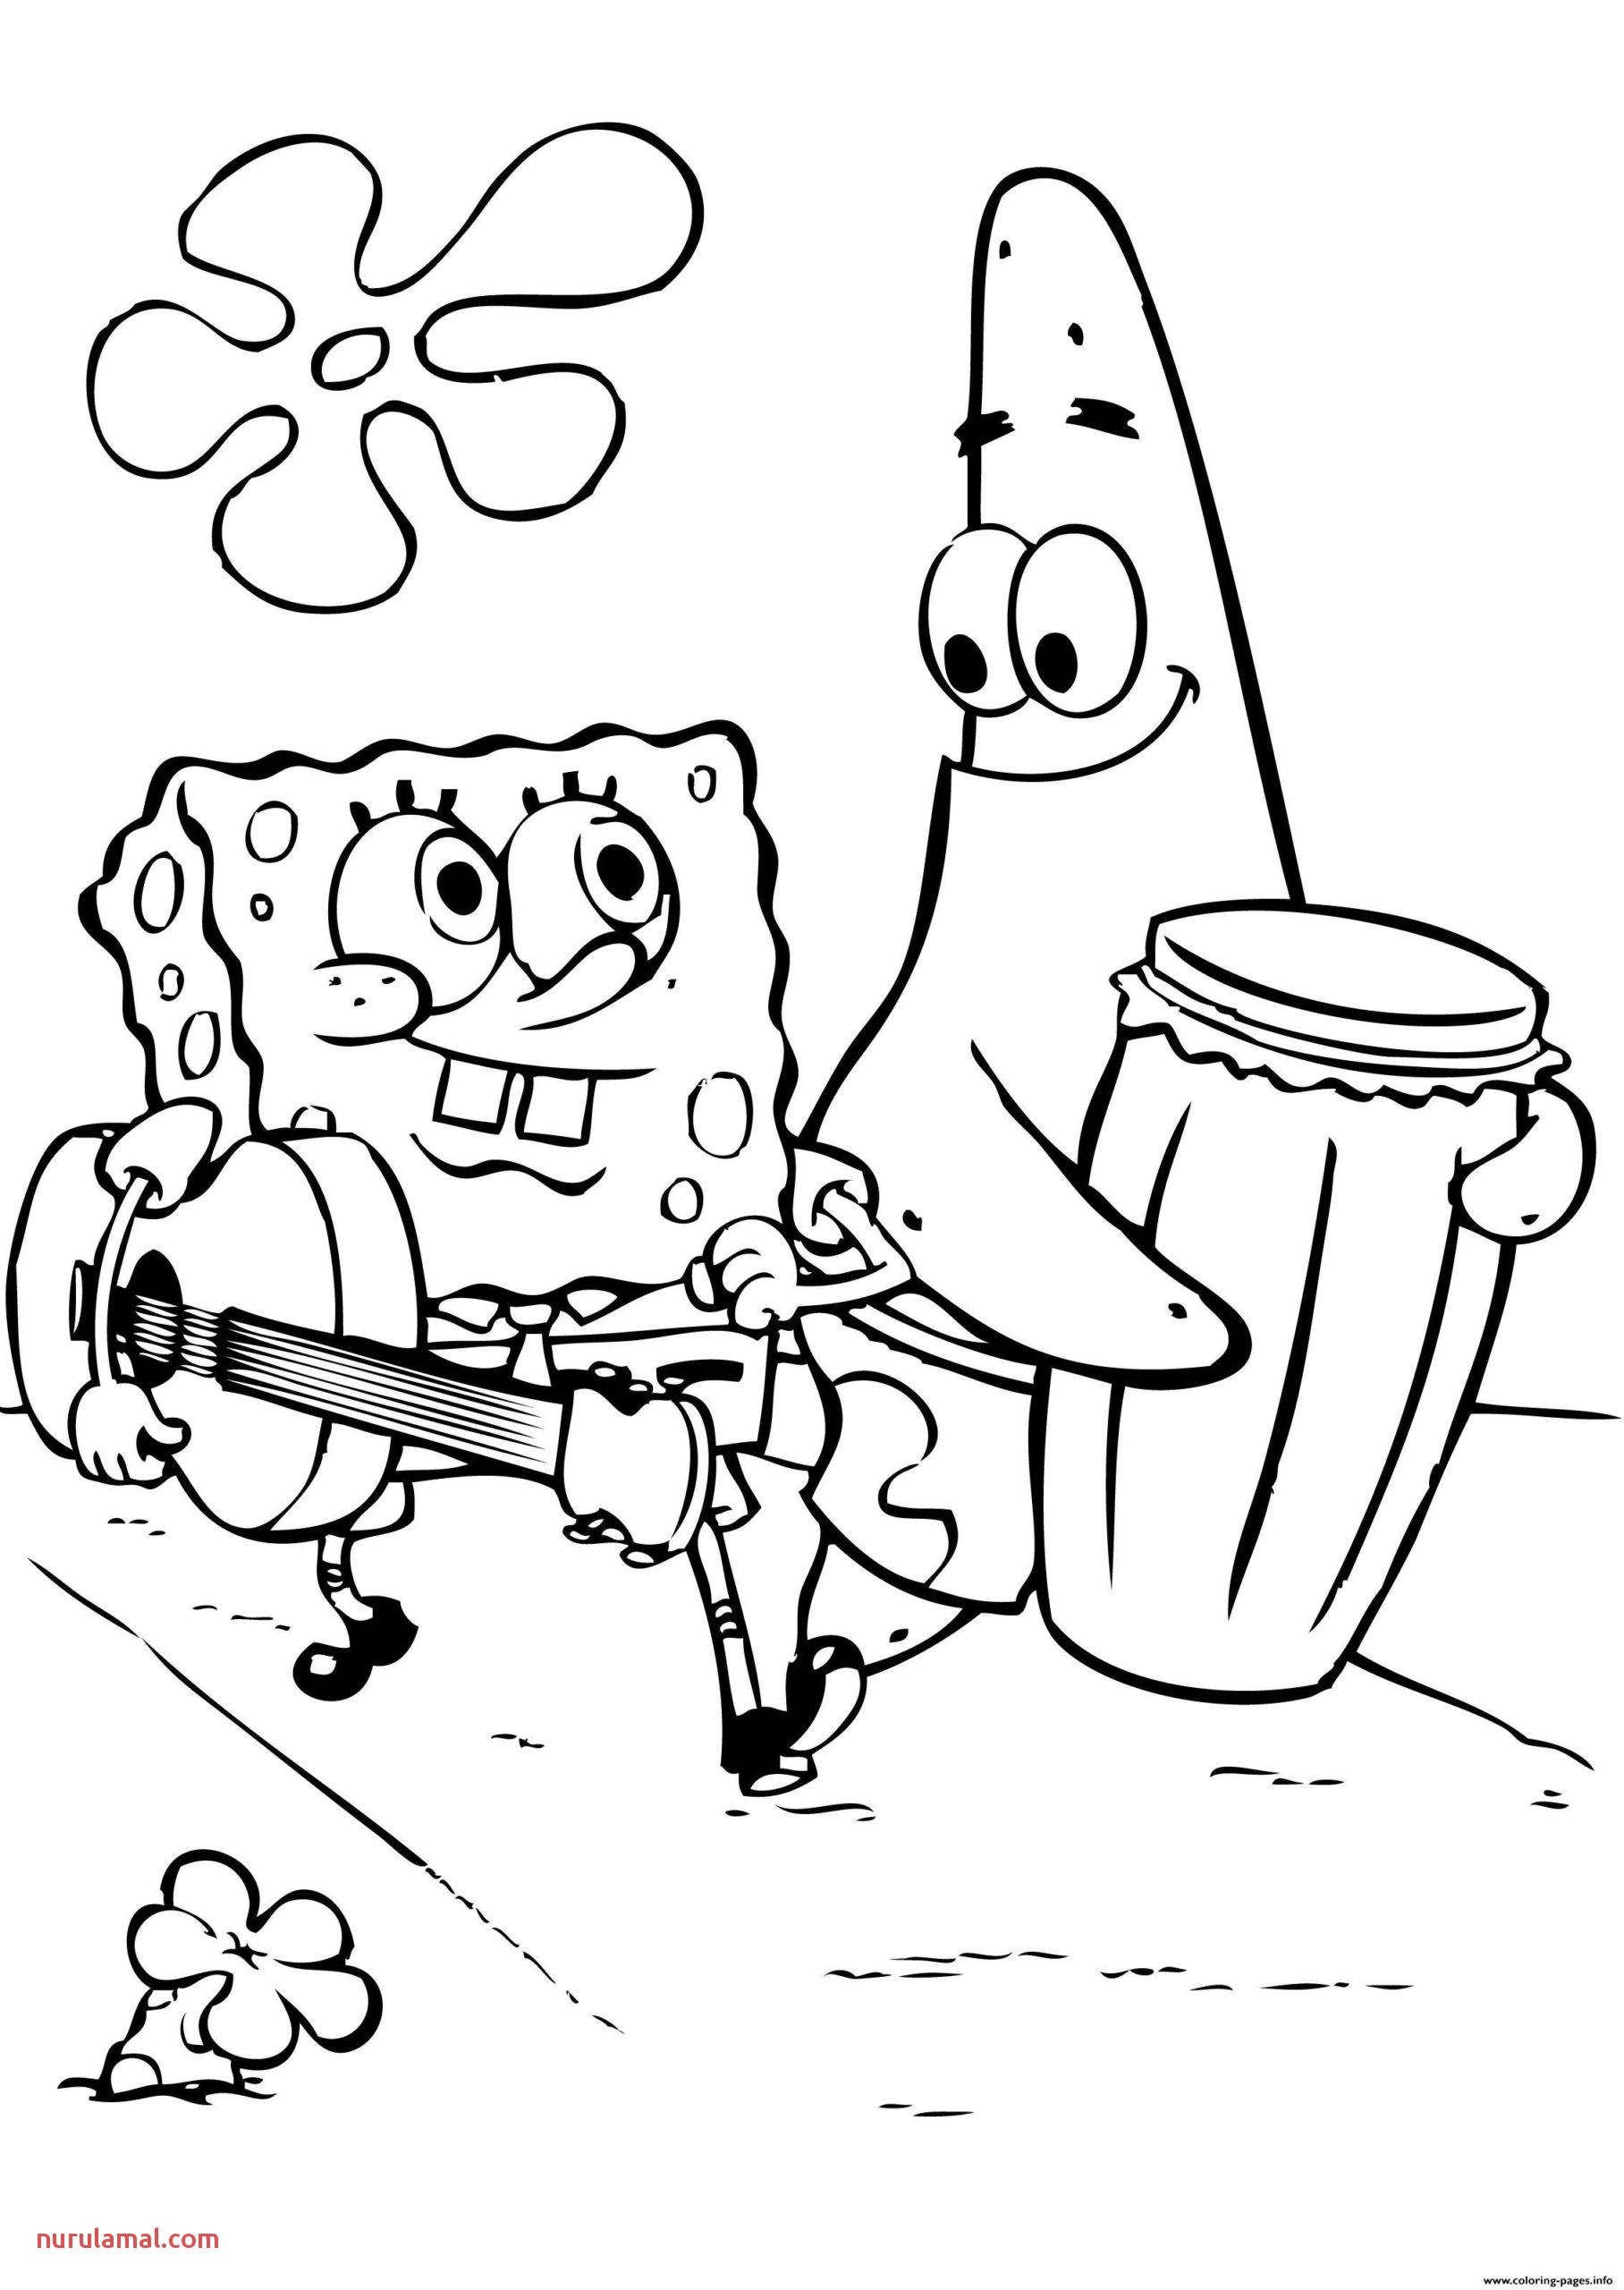 Pin On Coloring Activity Pages